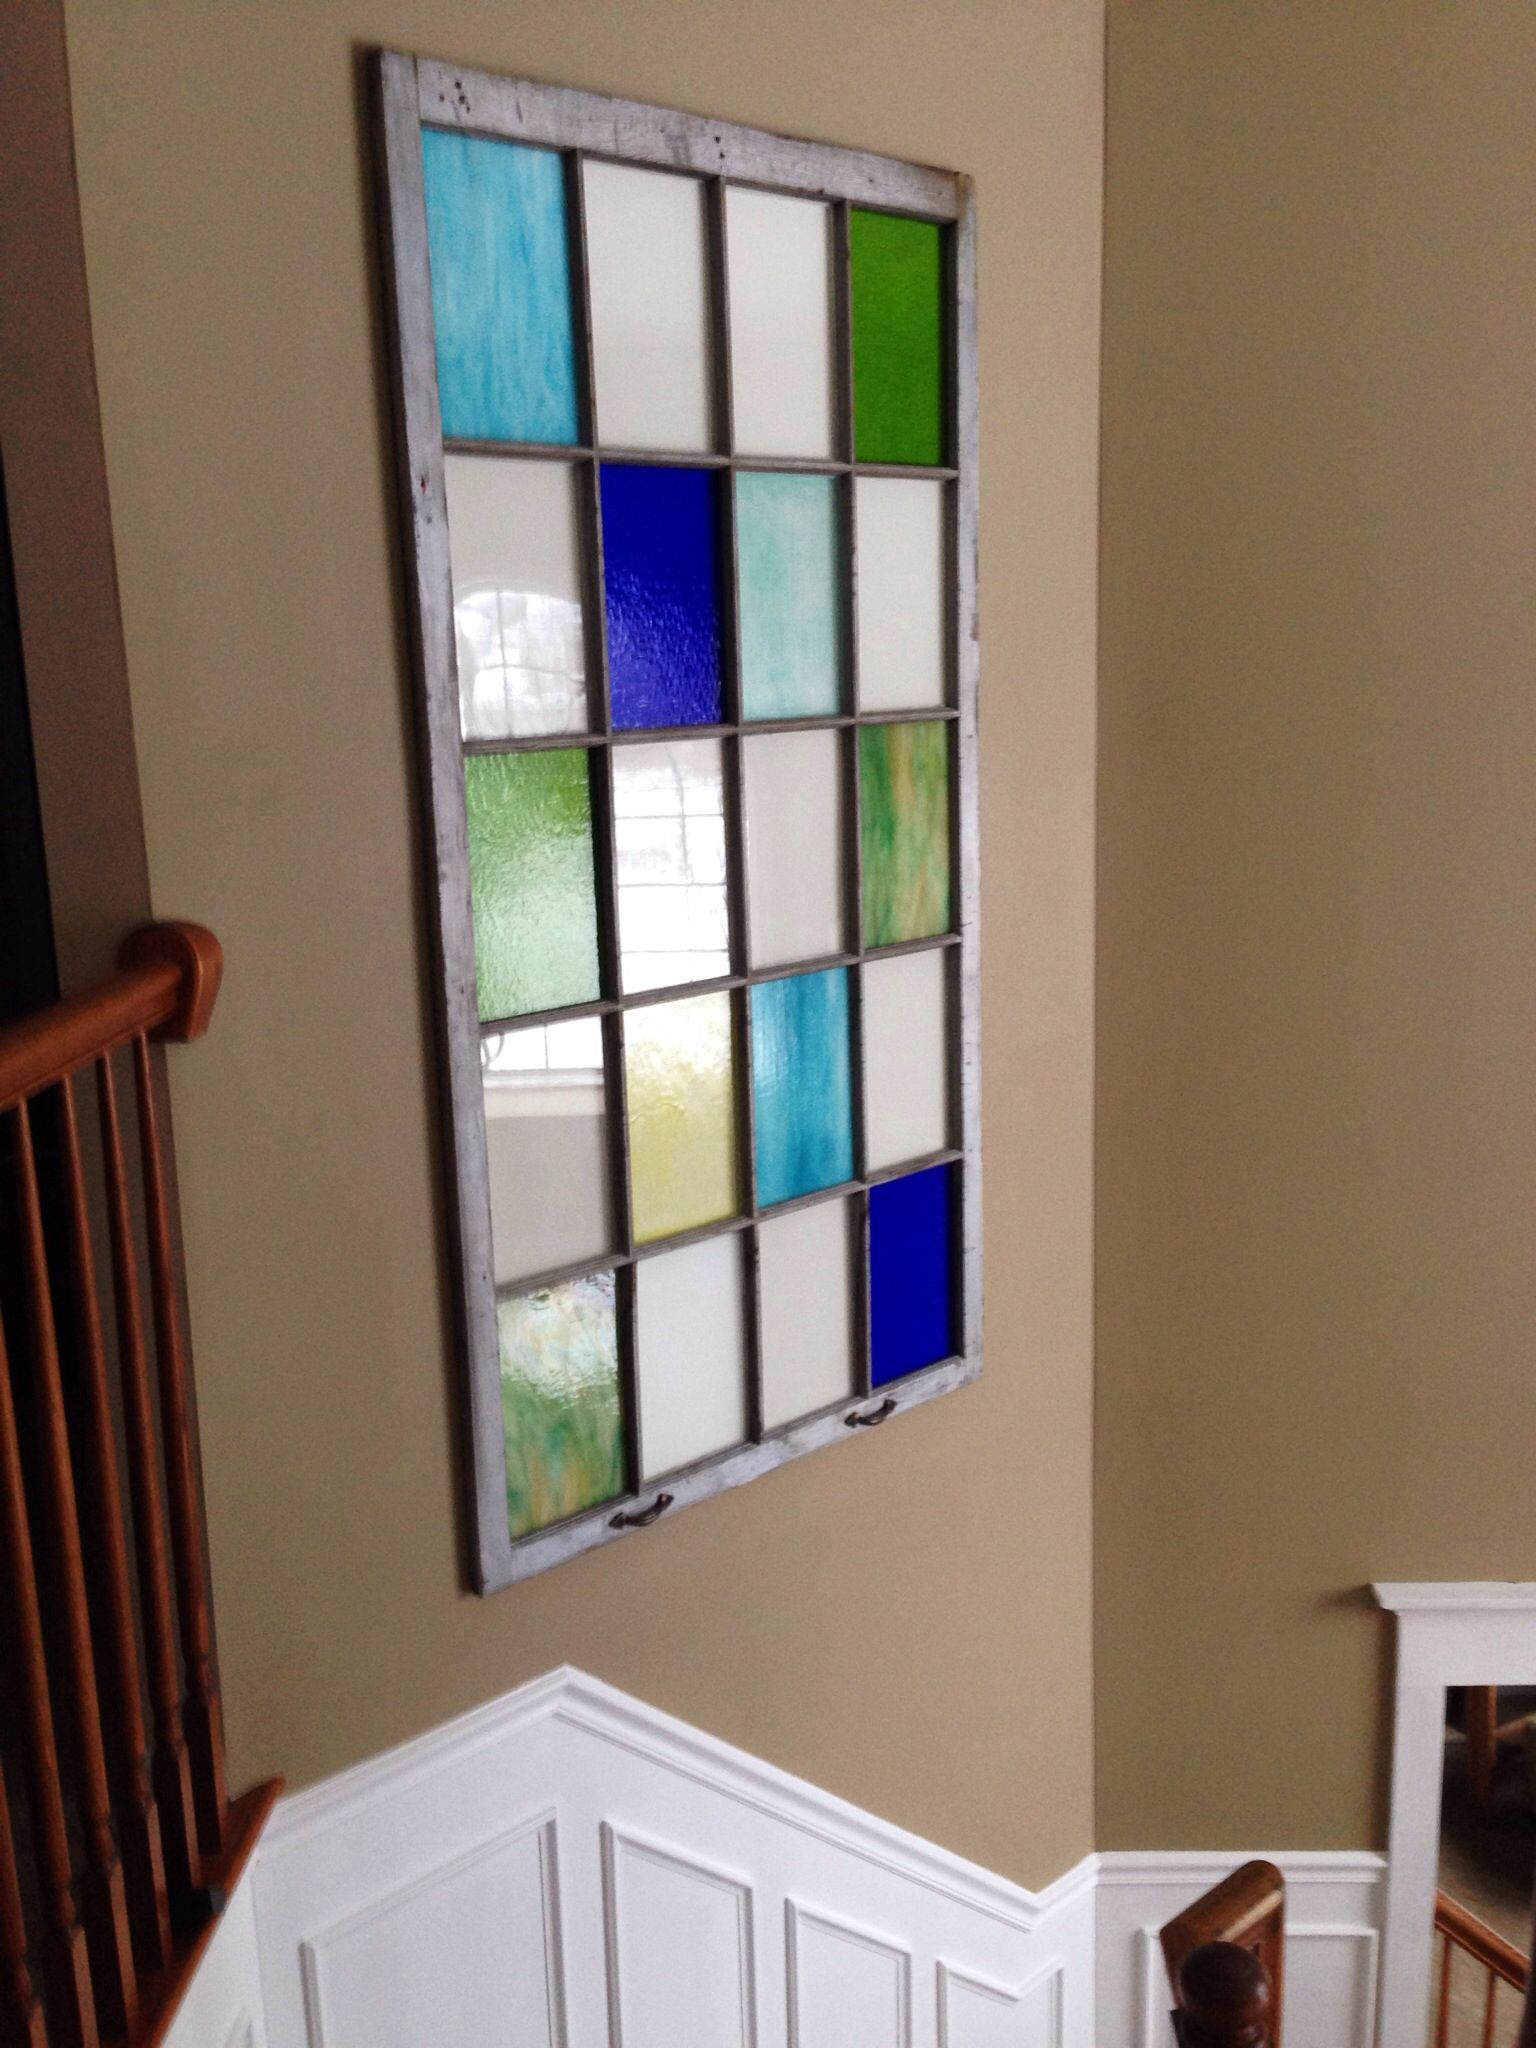 Installation - Wausau Window and Wall Systems